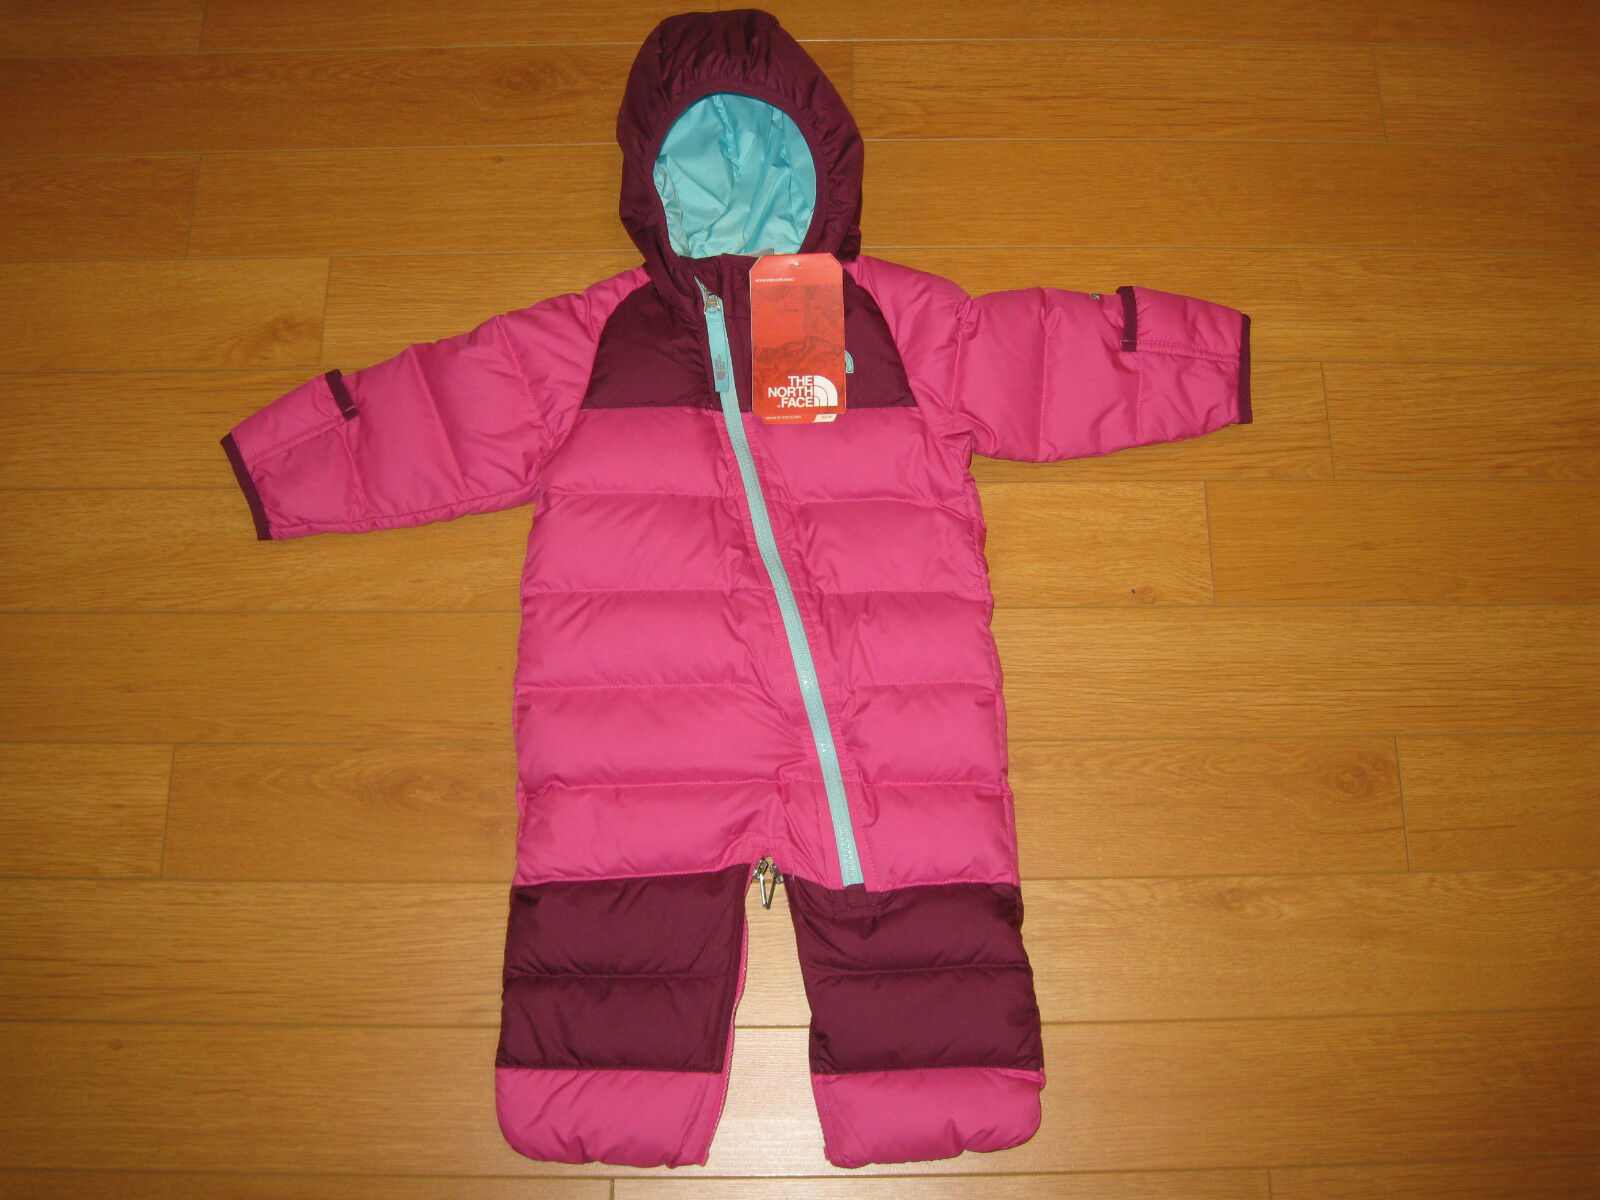 ede0788cabbb 73 62 The North Face Pink Infant Lil Snuggler Down Suit Size 3-6 M ...